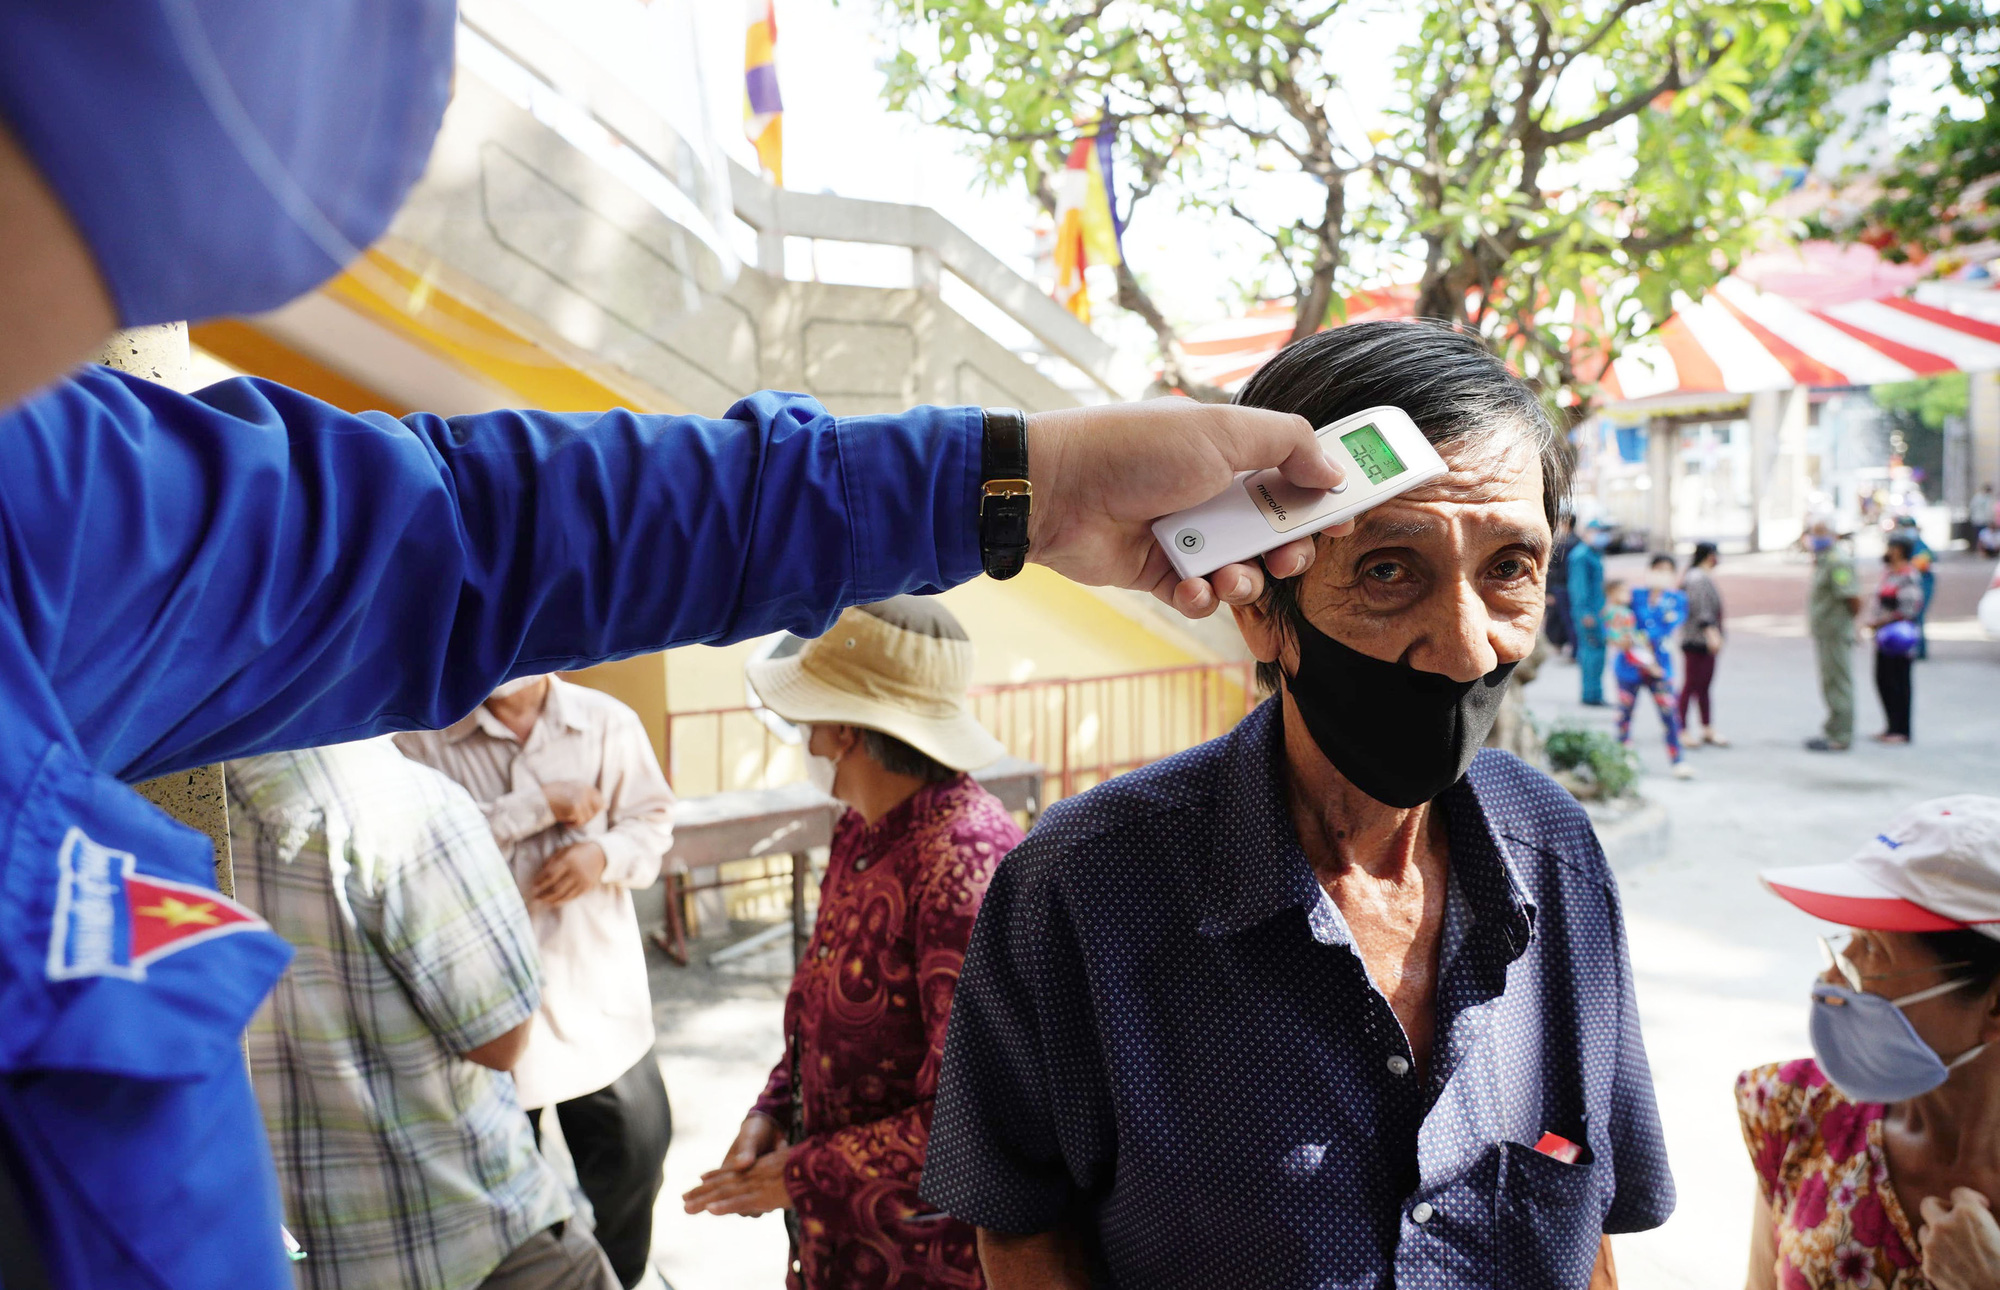 A volunteer checks the body temperature of a customer at the entrance of the 'Zero-VND Happy Supermarket' located at Vinh Nghiem Pagoda in District 3, Ho Chi Minh City, Vietnam. Photo: Duyen Phan / Tuoi Tre